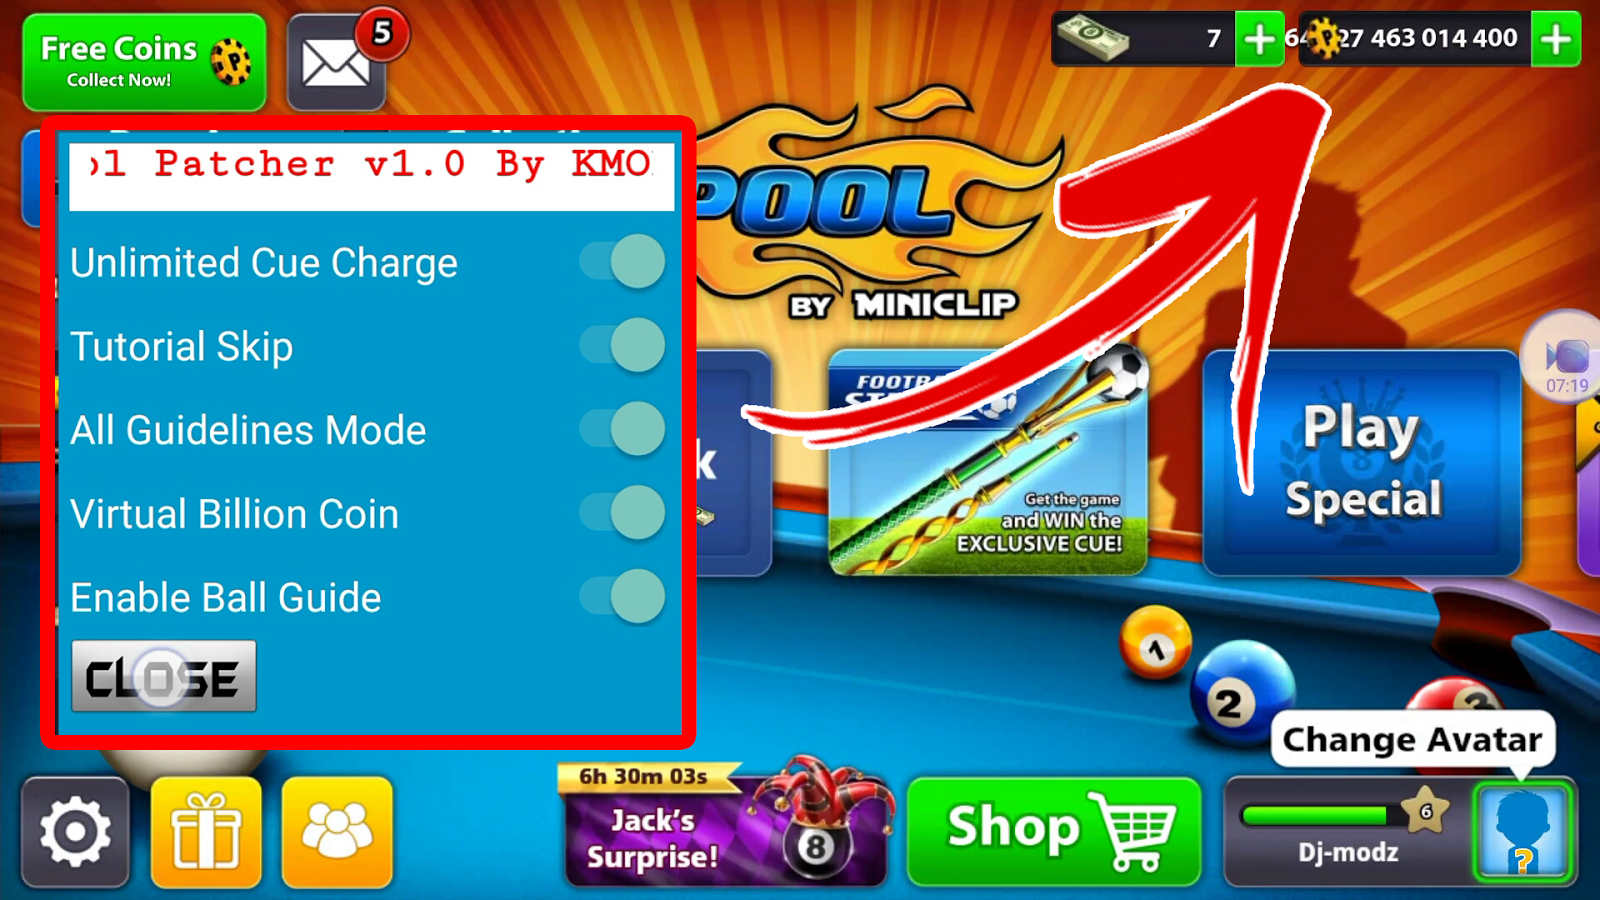 8 ball pool aim hack game download